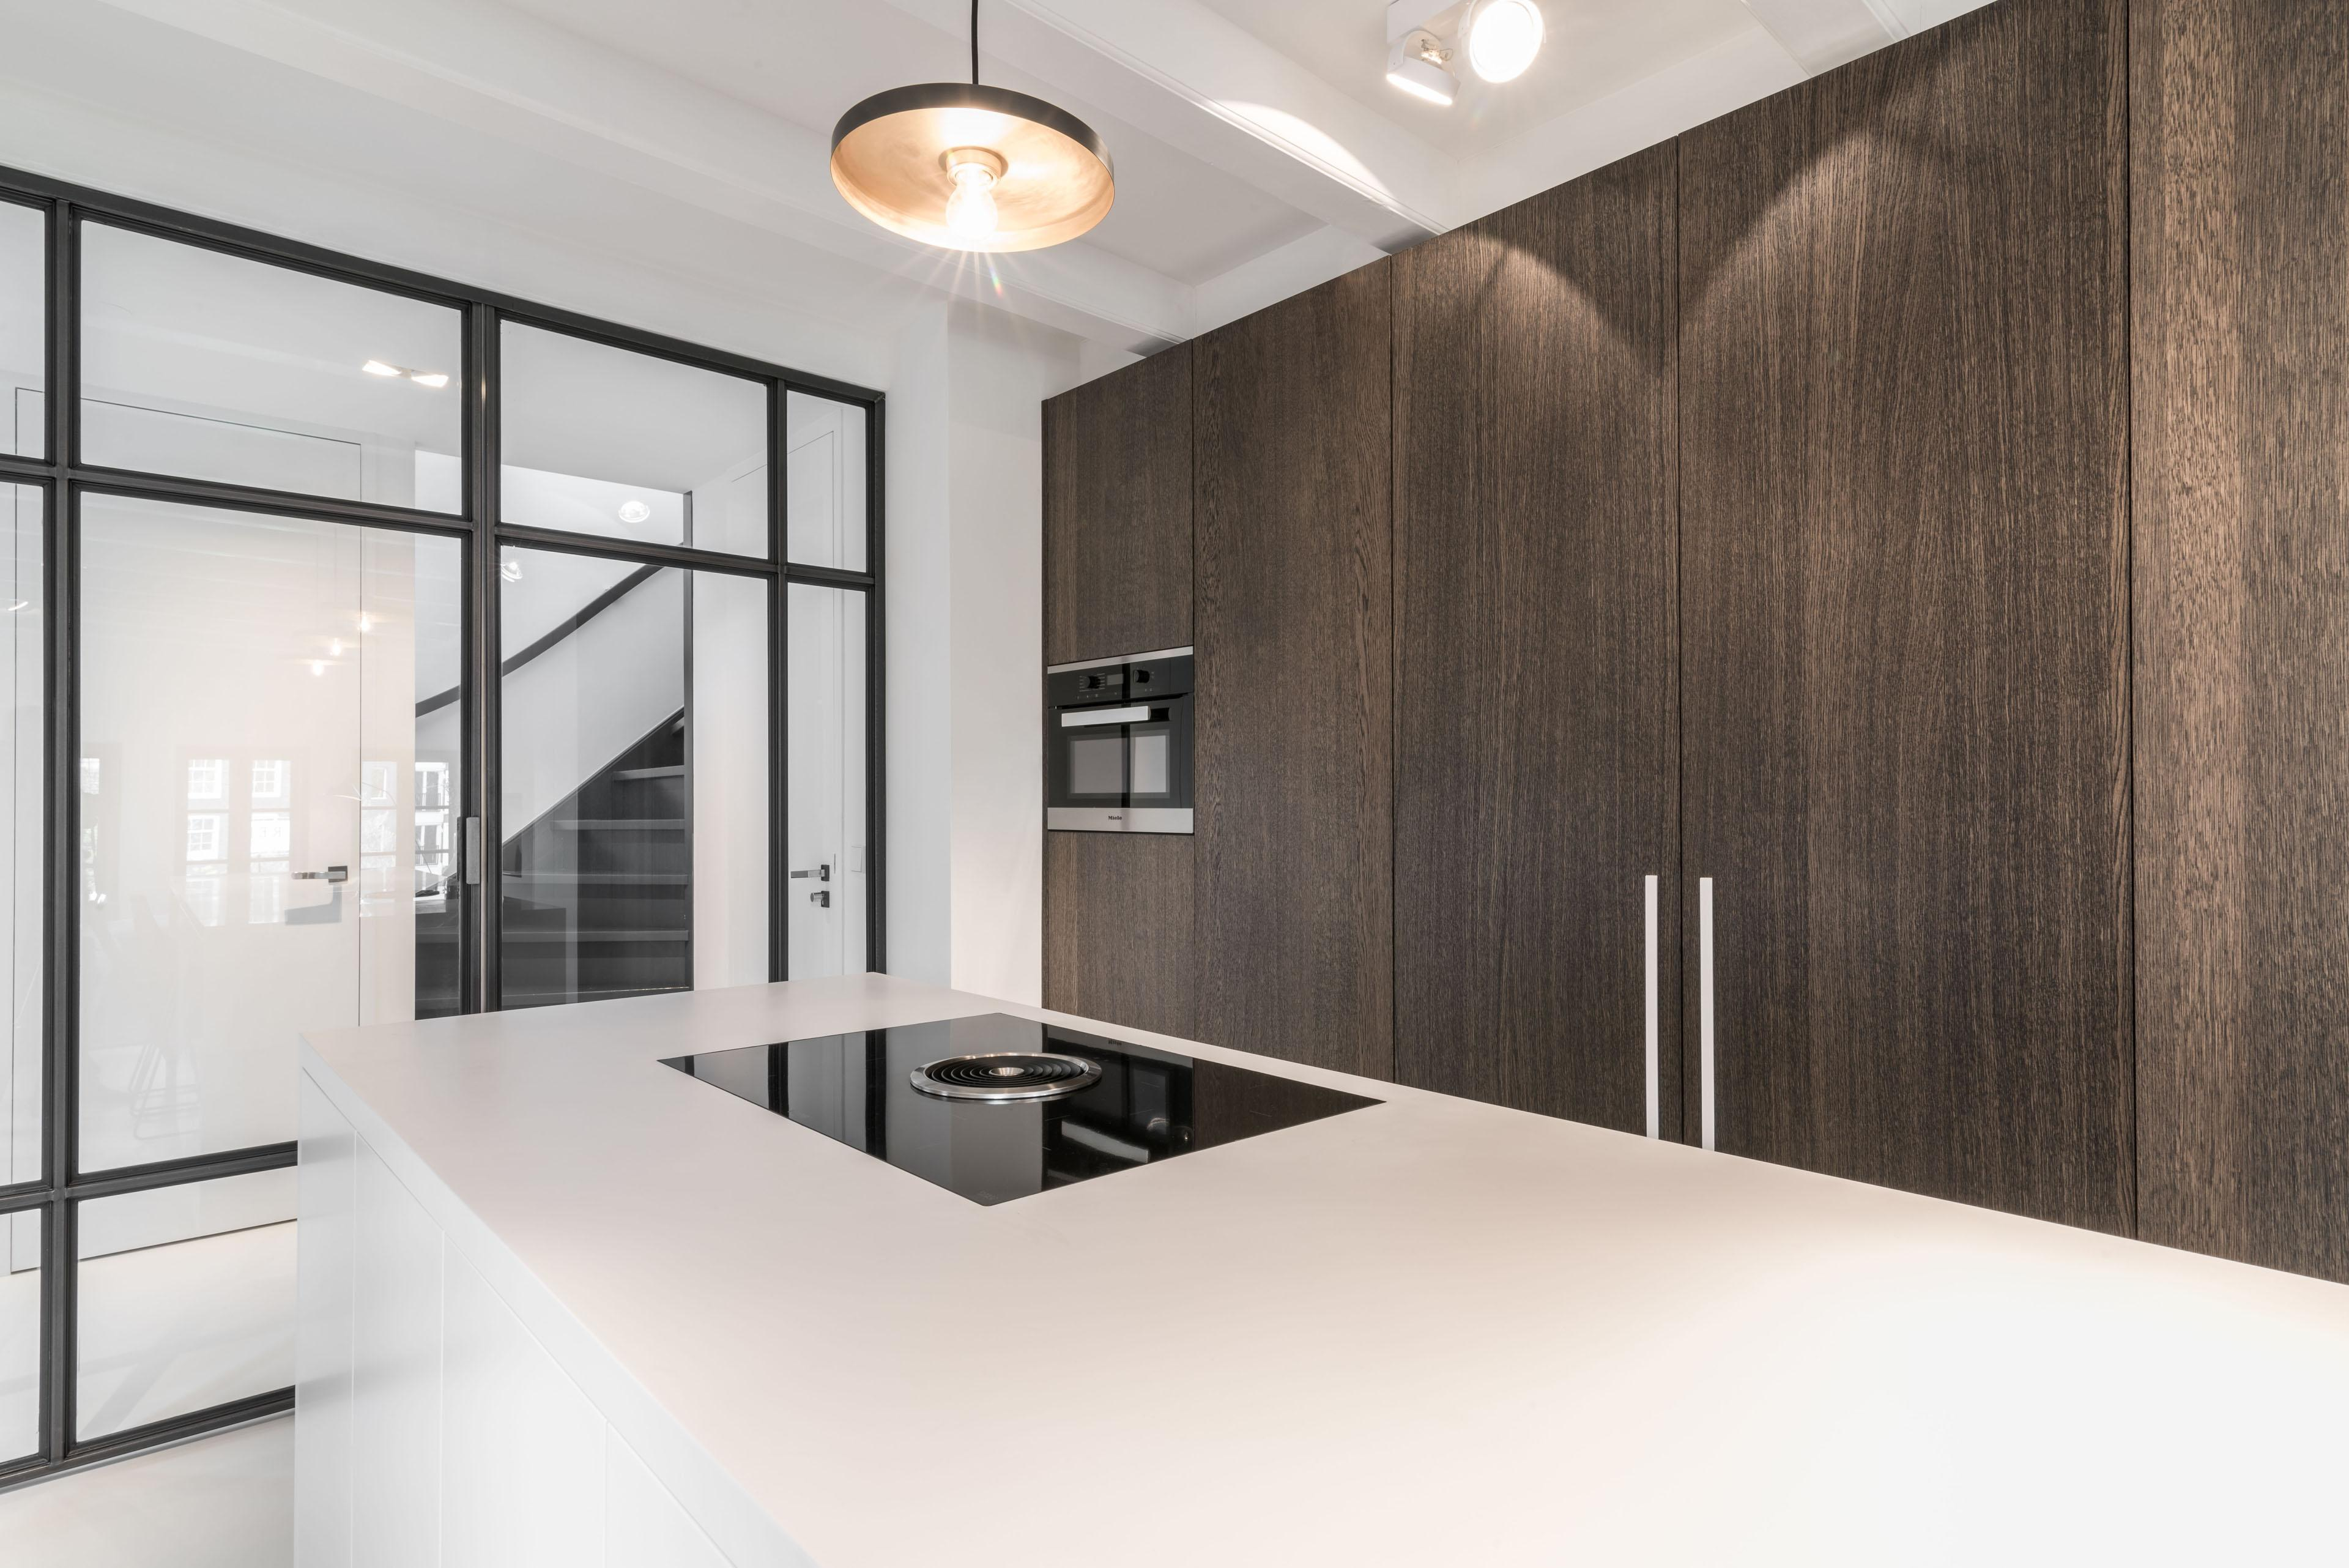 Kool_Kitchen_Constantin_Loft_Basic_006.jpg